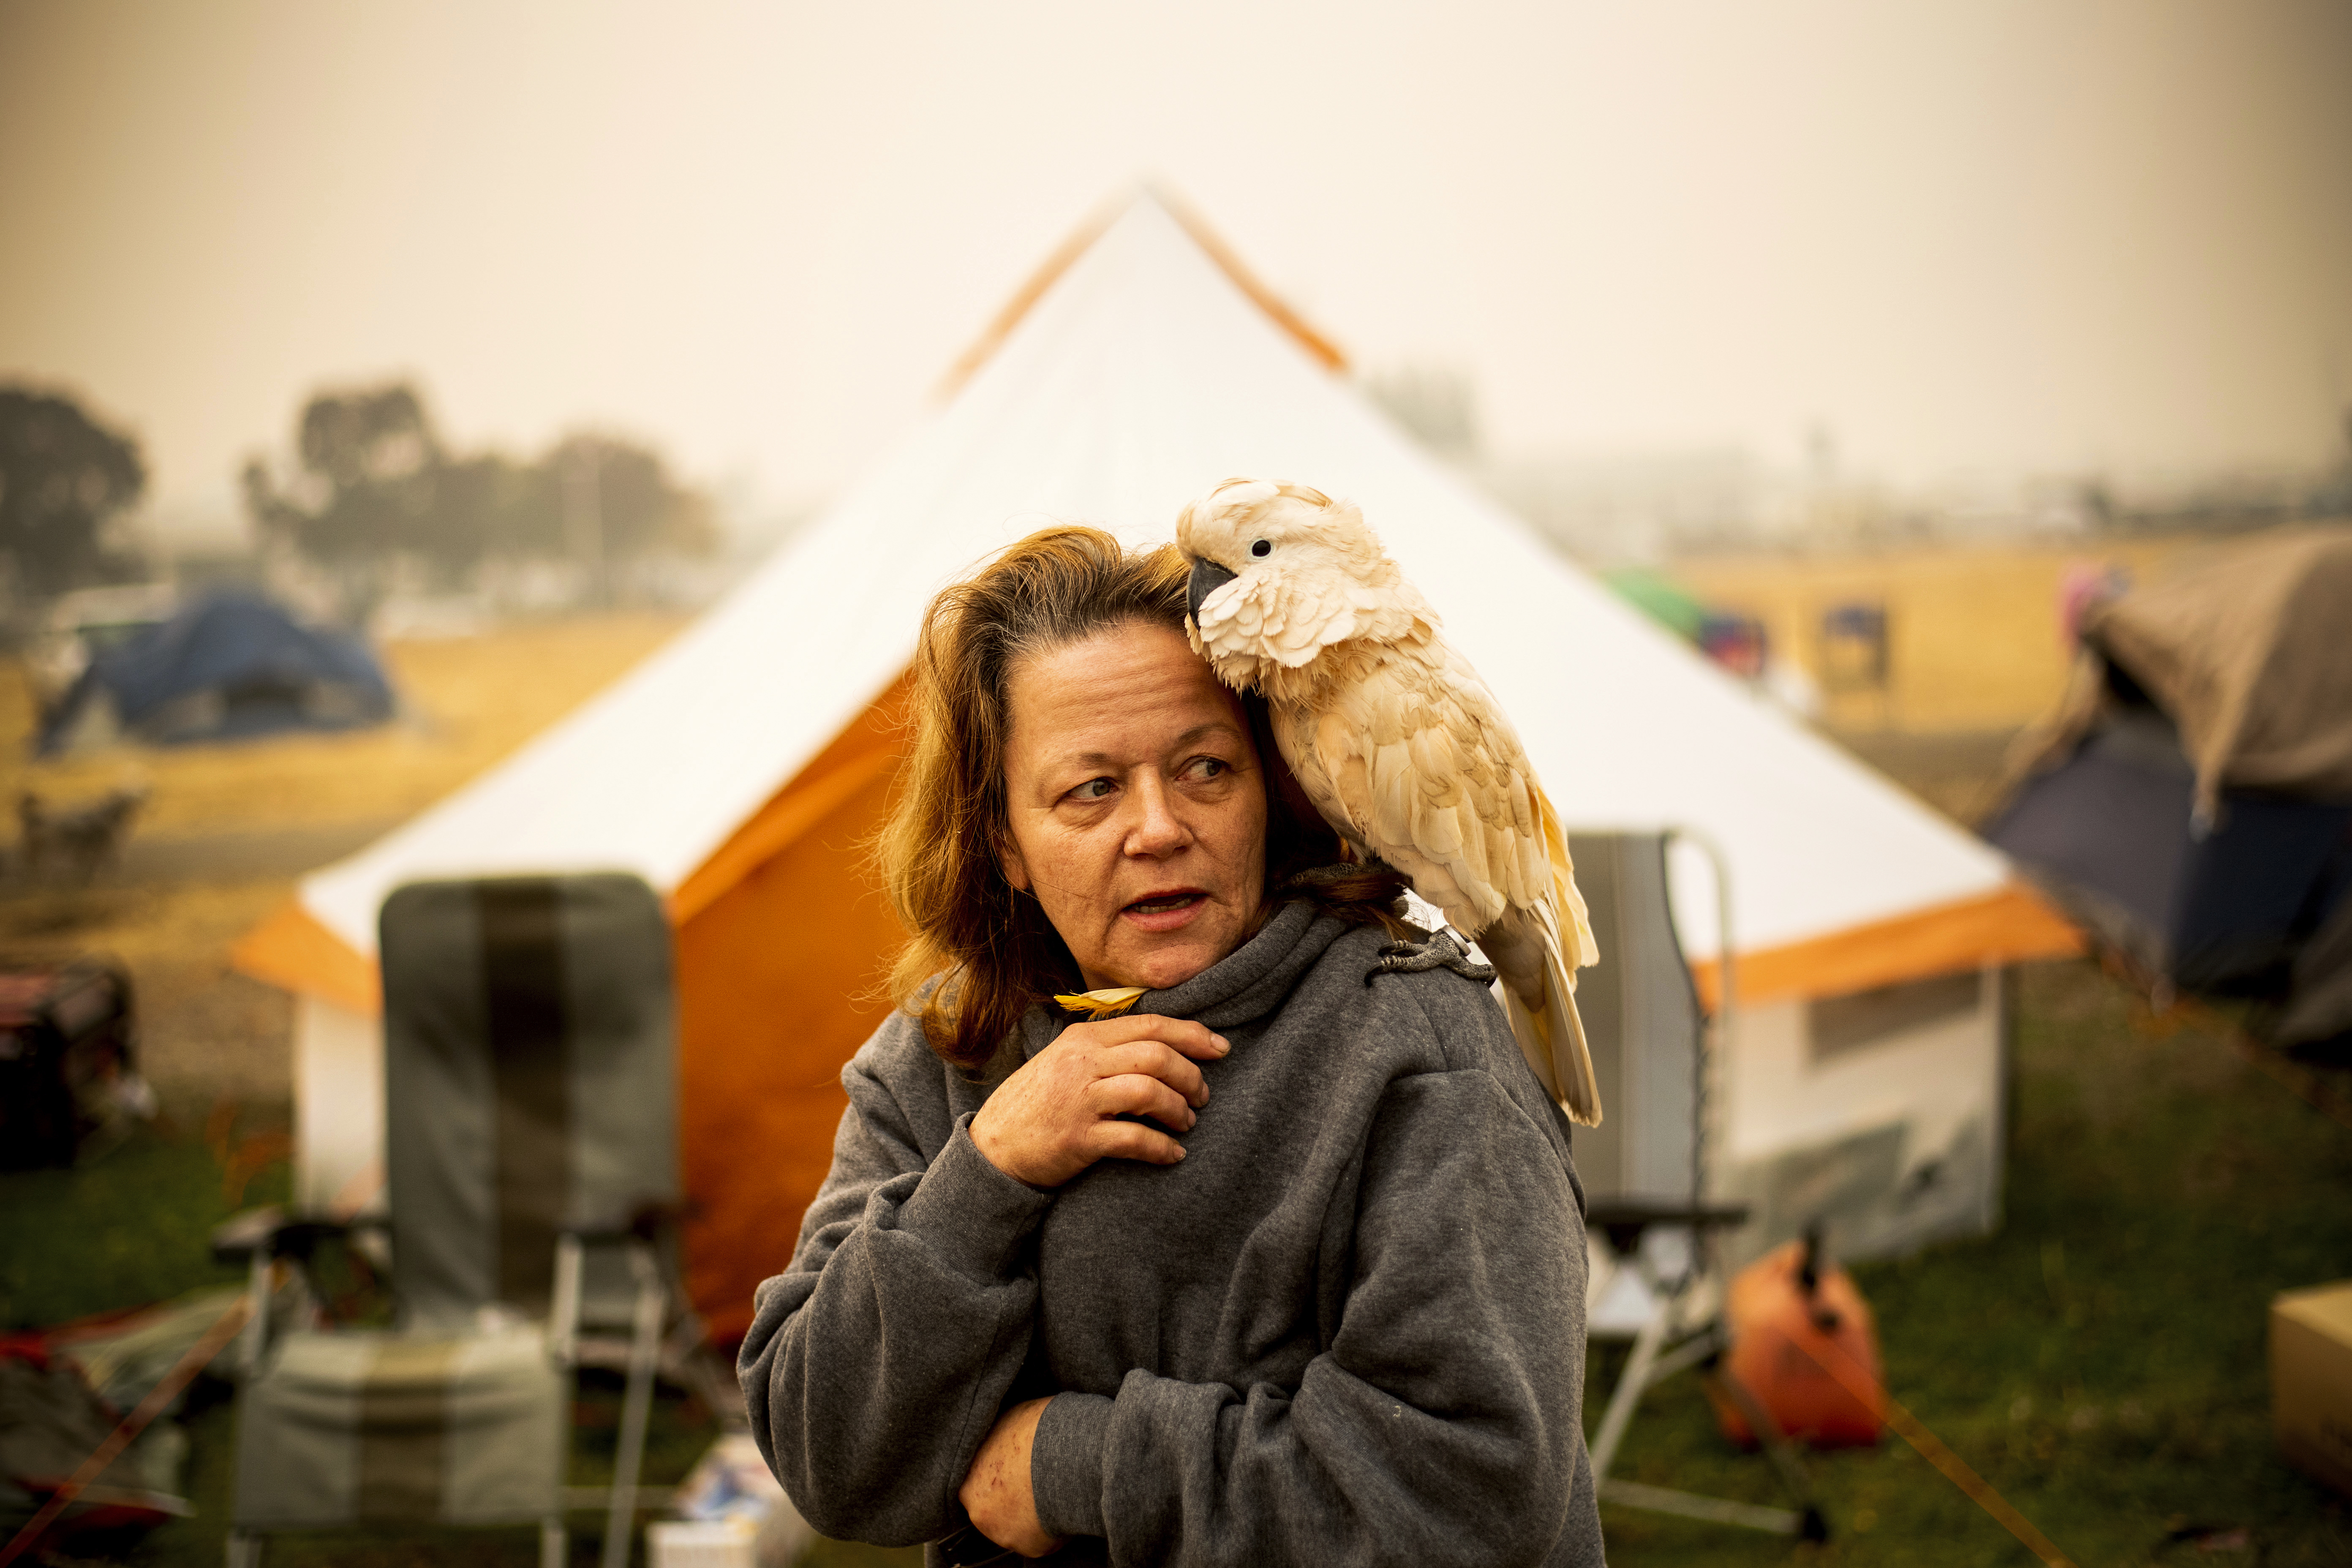 Suzanne Kaksonen, an evacuee of the Camp Fire, and her cockatoo Buddy camp at a makeshift shelter outside a Walmart store in Chico, Calif., on November 14, 2018. Kaksonen lost her Paradise home in the blaze.